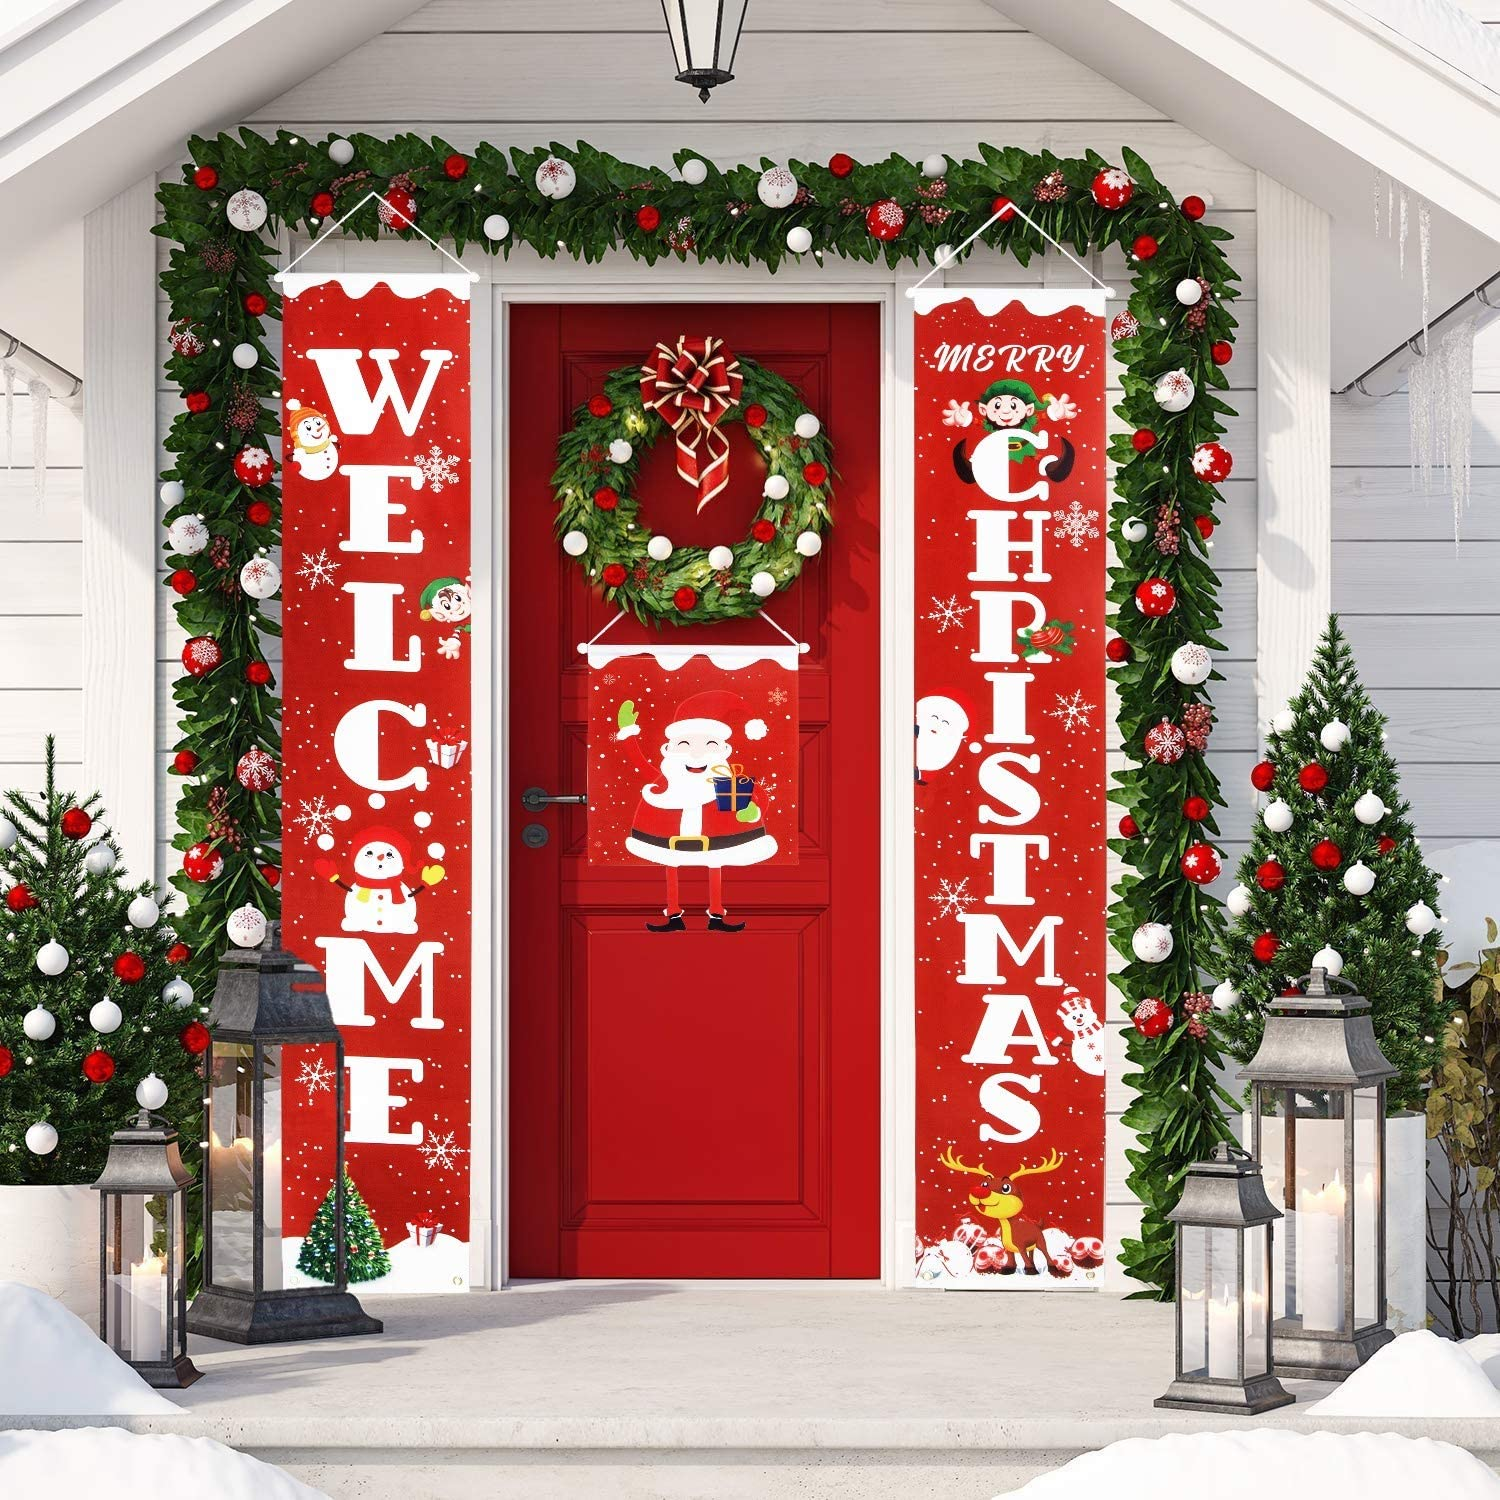 Christmas Decorations For Outside Front Door  from images-na.ssl-images-amazon.com